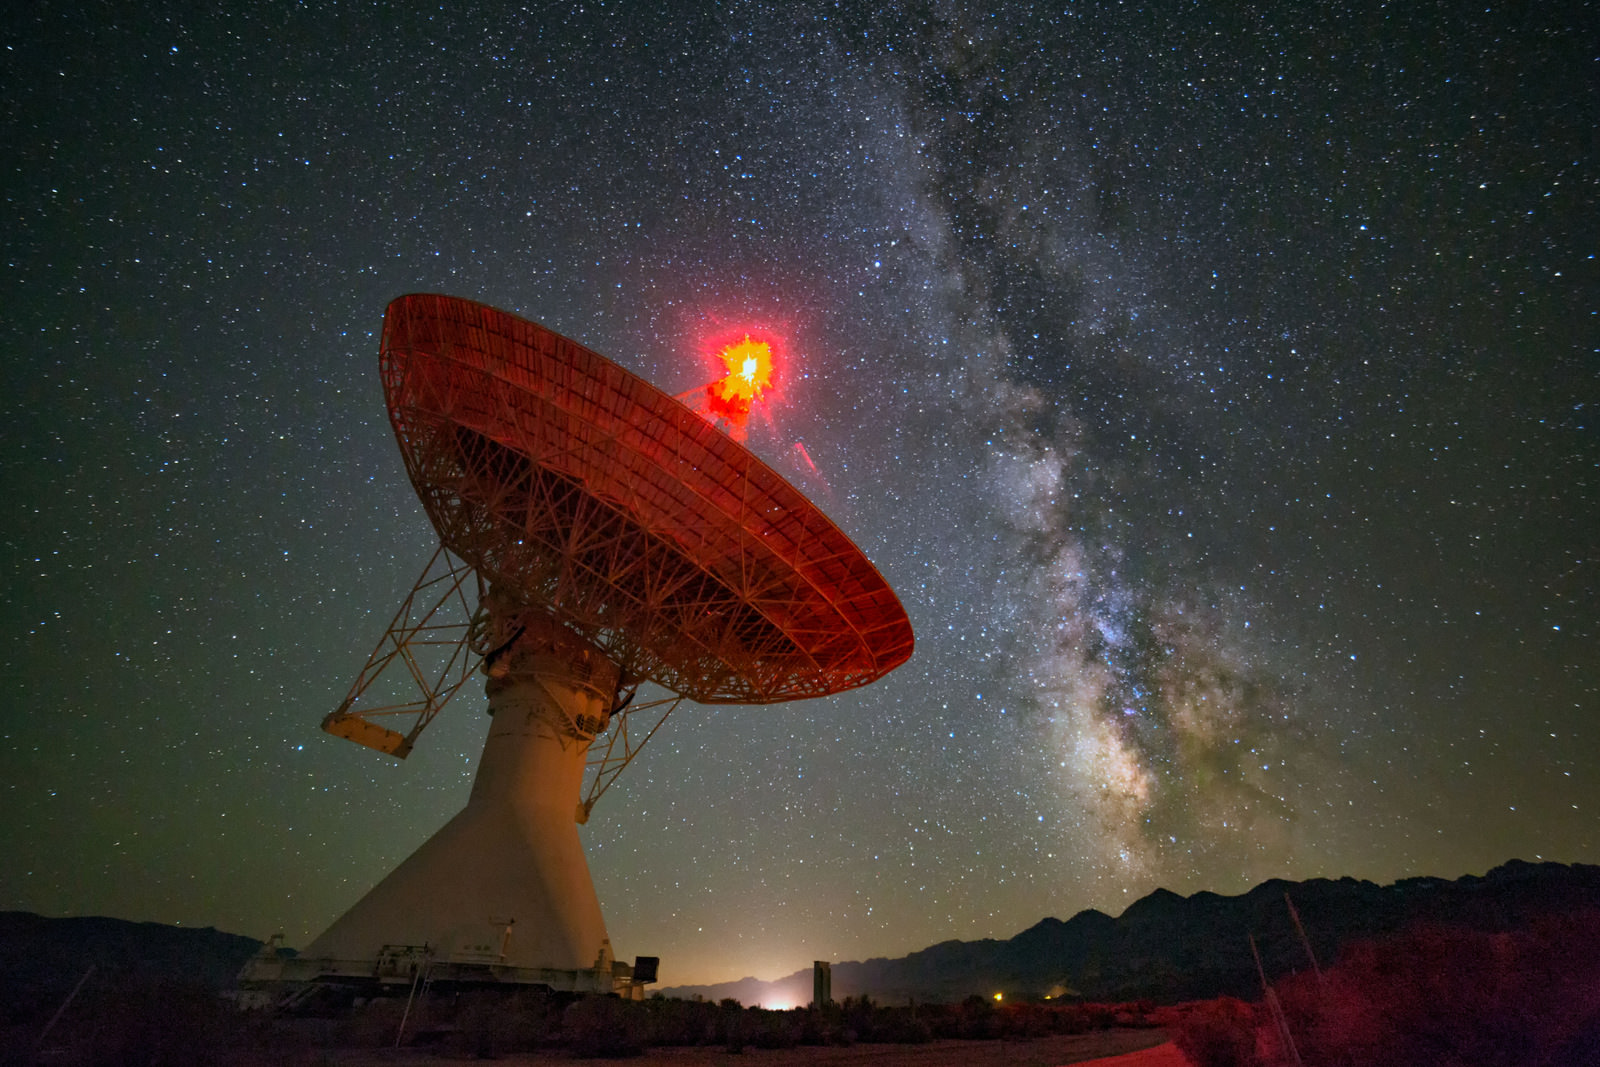 A radio dish at Owens Valley Observatory in Owens Valley California. Credit and copyright:  Credit and copyright: Harun Mehmedinovic and Gavin Heffernan.